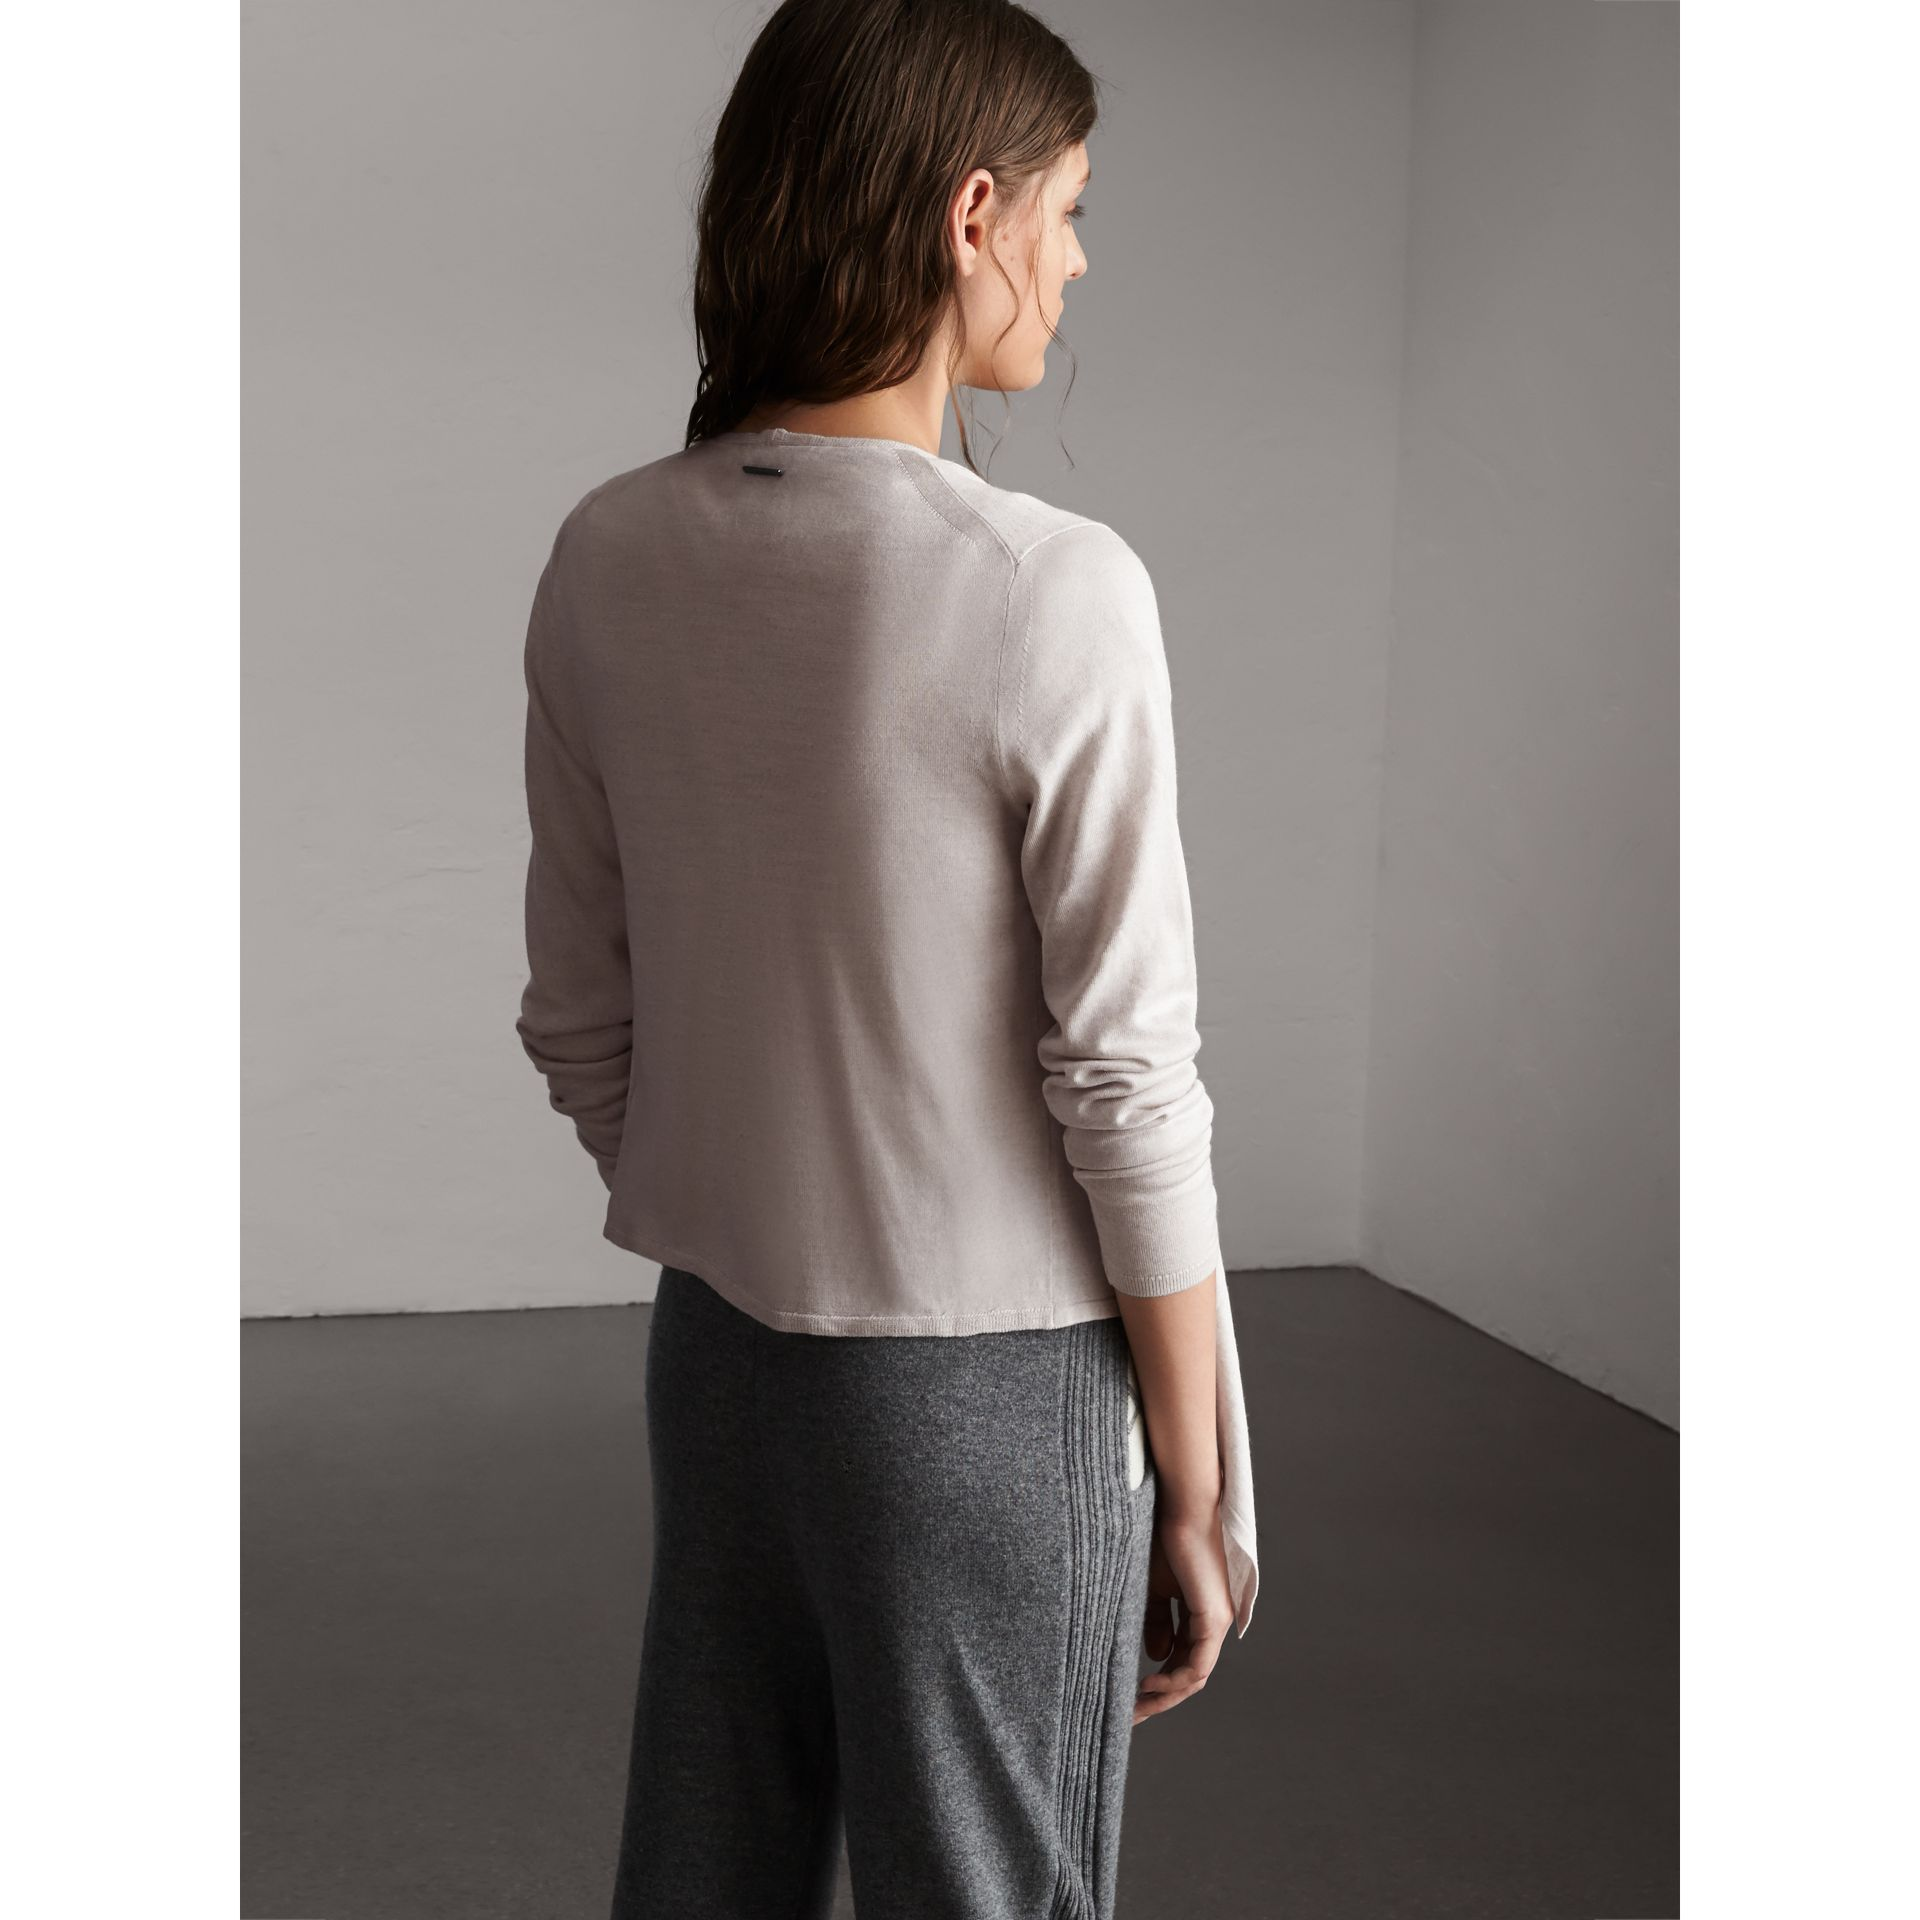 Merino Wool Silk Open Cardigan in Light Grey Melange - Women | Burberry - gallery image 3